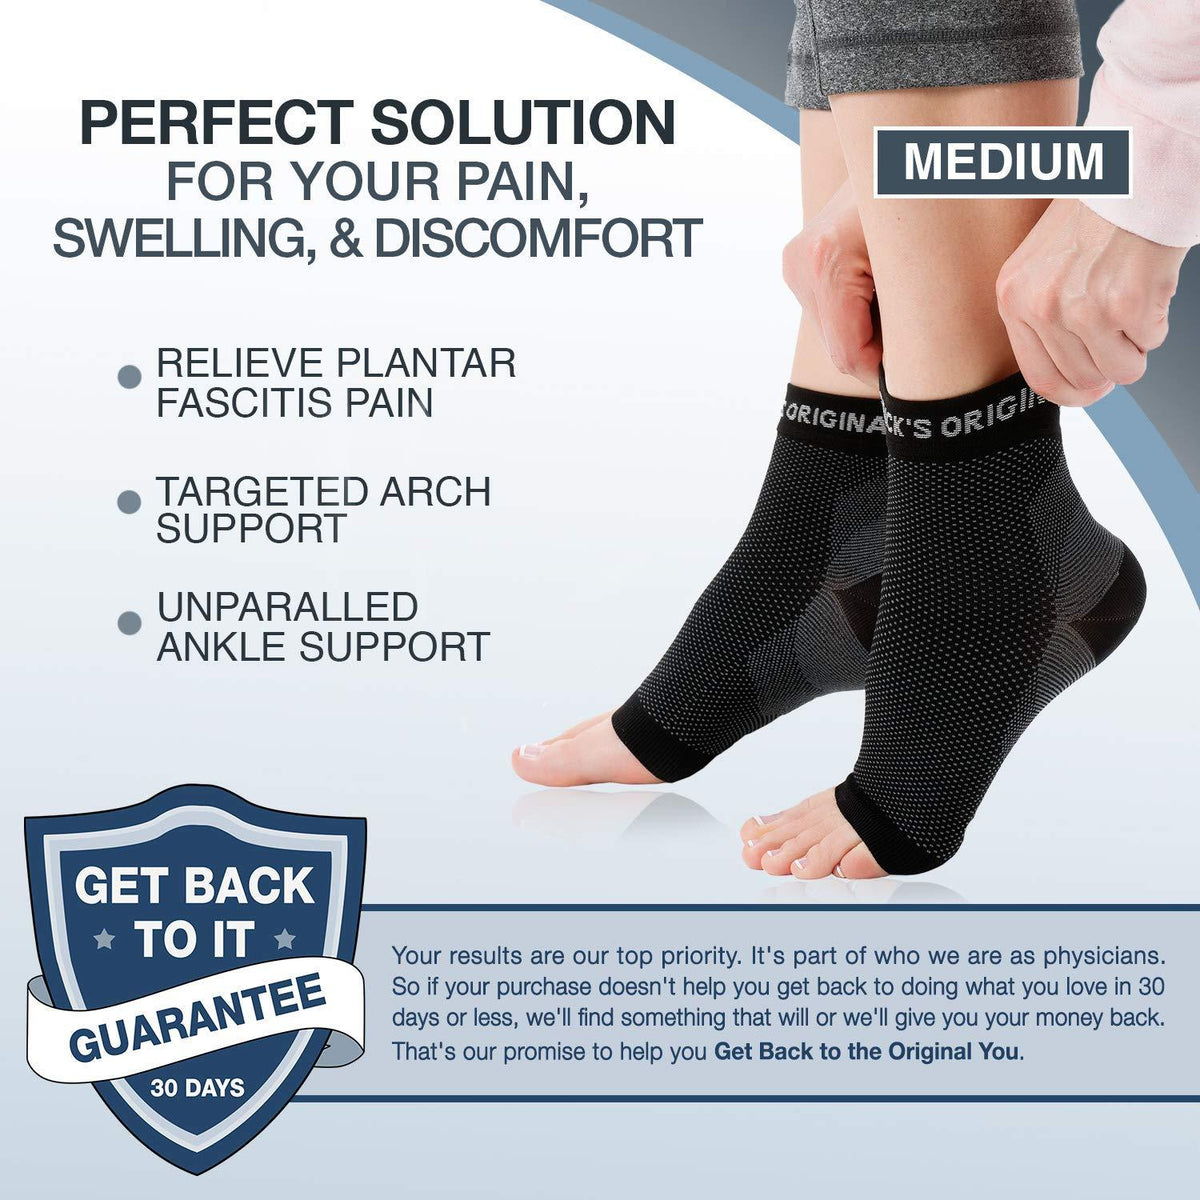 Dr. Frederick's Original Plantar Fasciitis Socks -- 2 Pieces - for Ankle Compression, Plantar Fasciitis, and Arch Support Foot Pain Dr. Frederick's Original